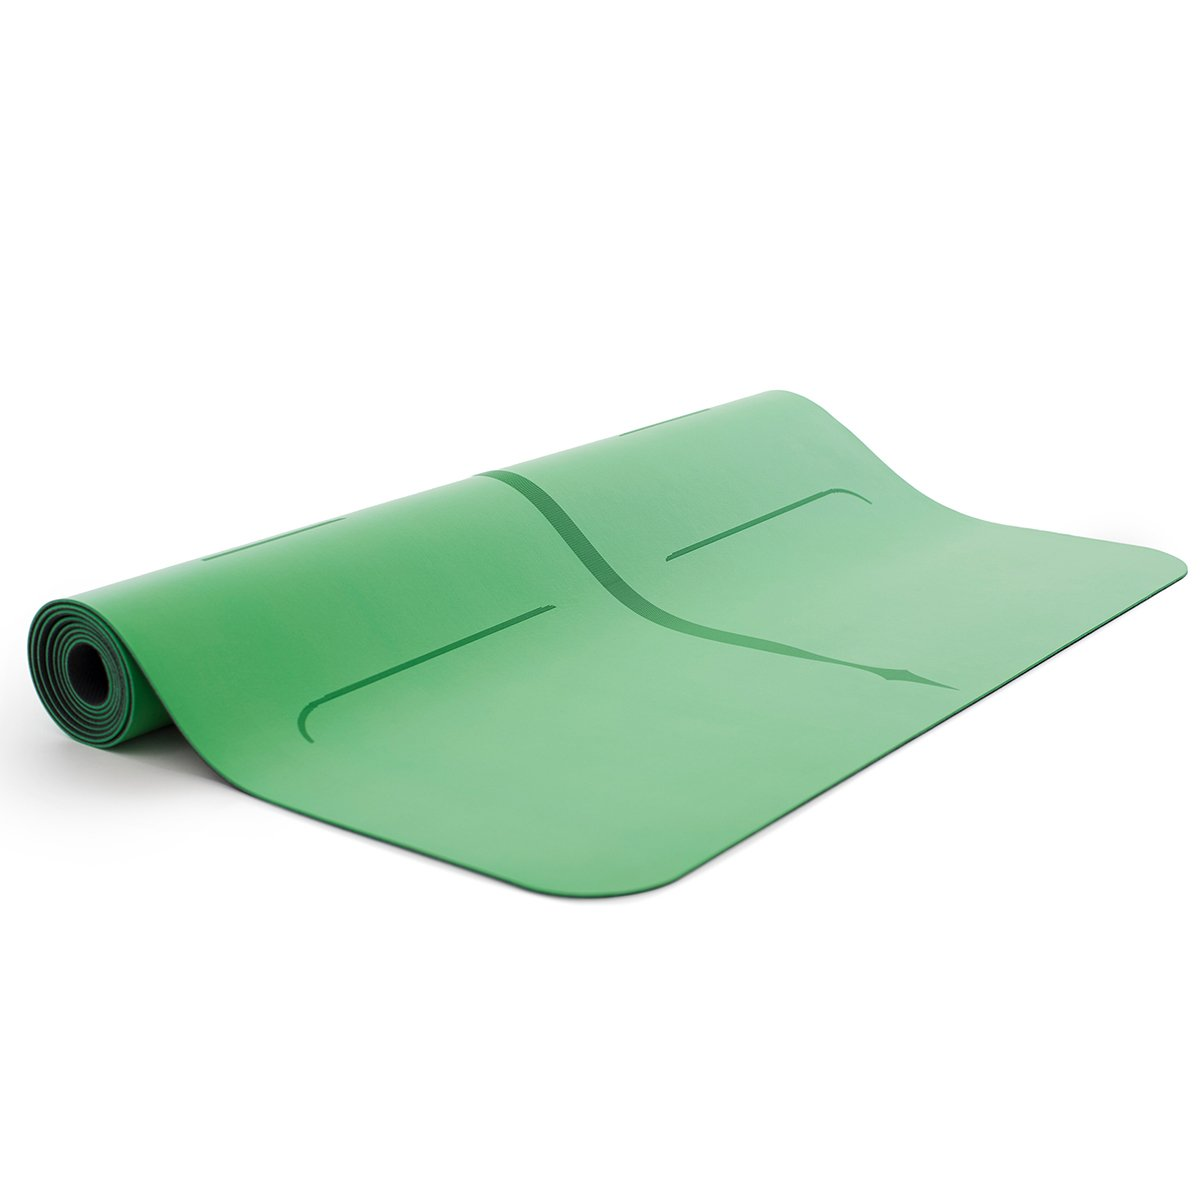 Liforme Travel Yoga Mat Biodegradable Mat Made with Natural Rubber /& A Warrior-Like Grip The Worlds Best Eco-Friendly Non Slip Yoga Mat with The Original Unique Alignment Marker System